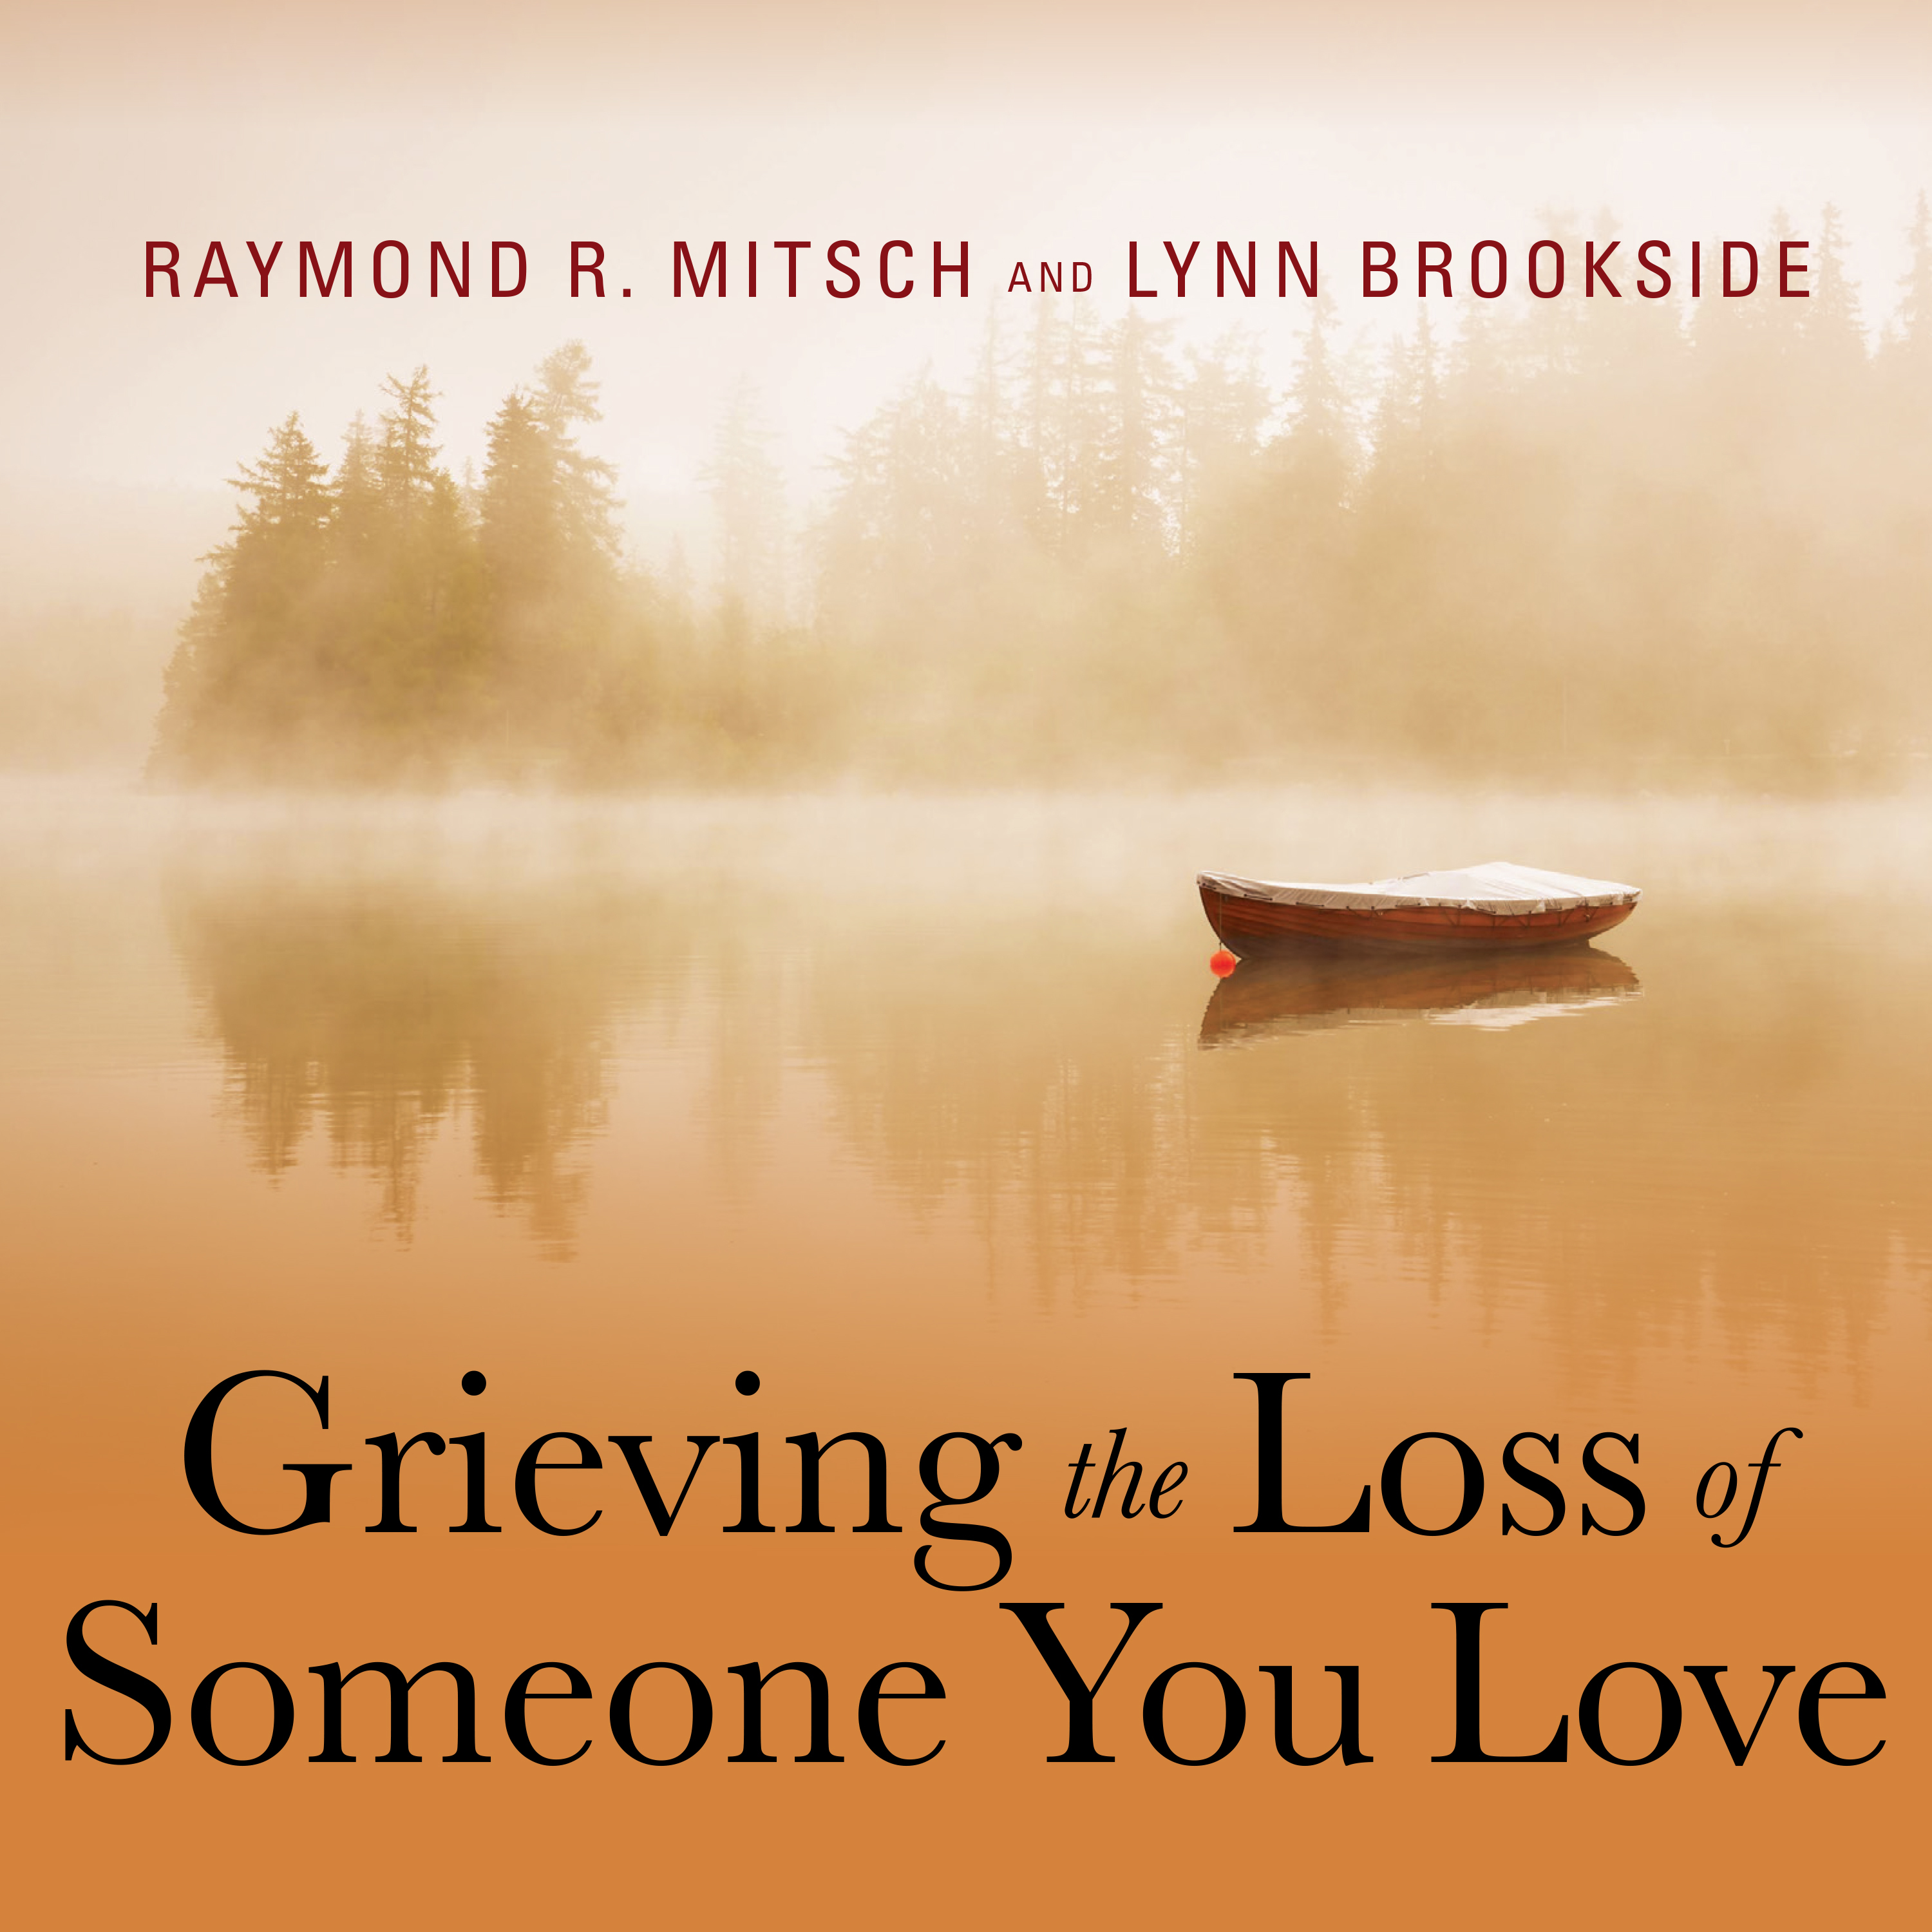 Printable Grieving the Loss of Someone You Love: Daily Meditations to Help You Through the Grieving Process Audiobook Cover Art